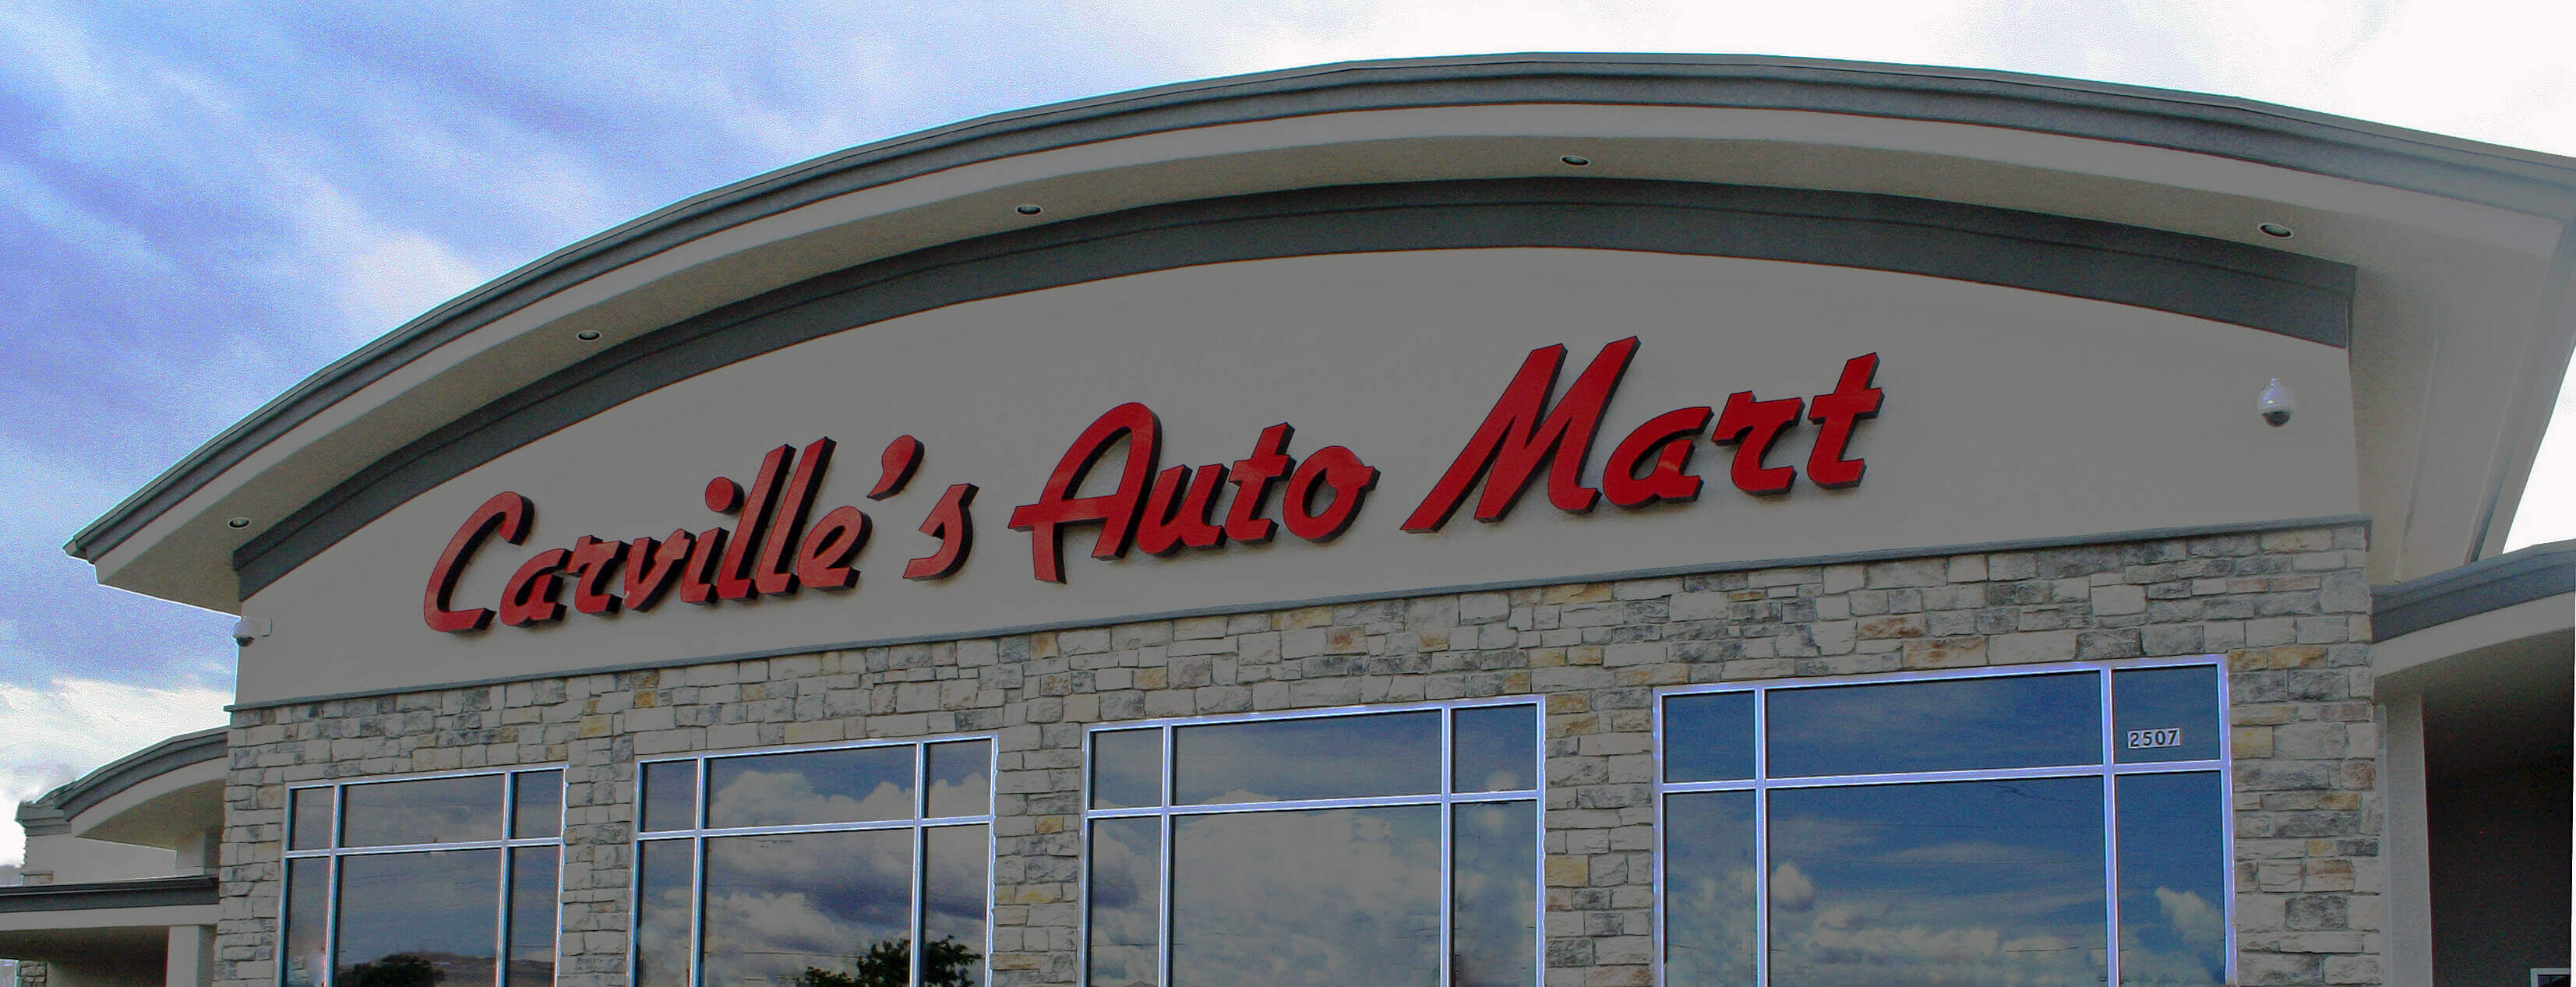 About Carville's Auto Mart